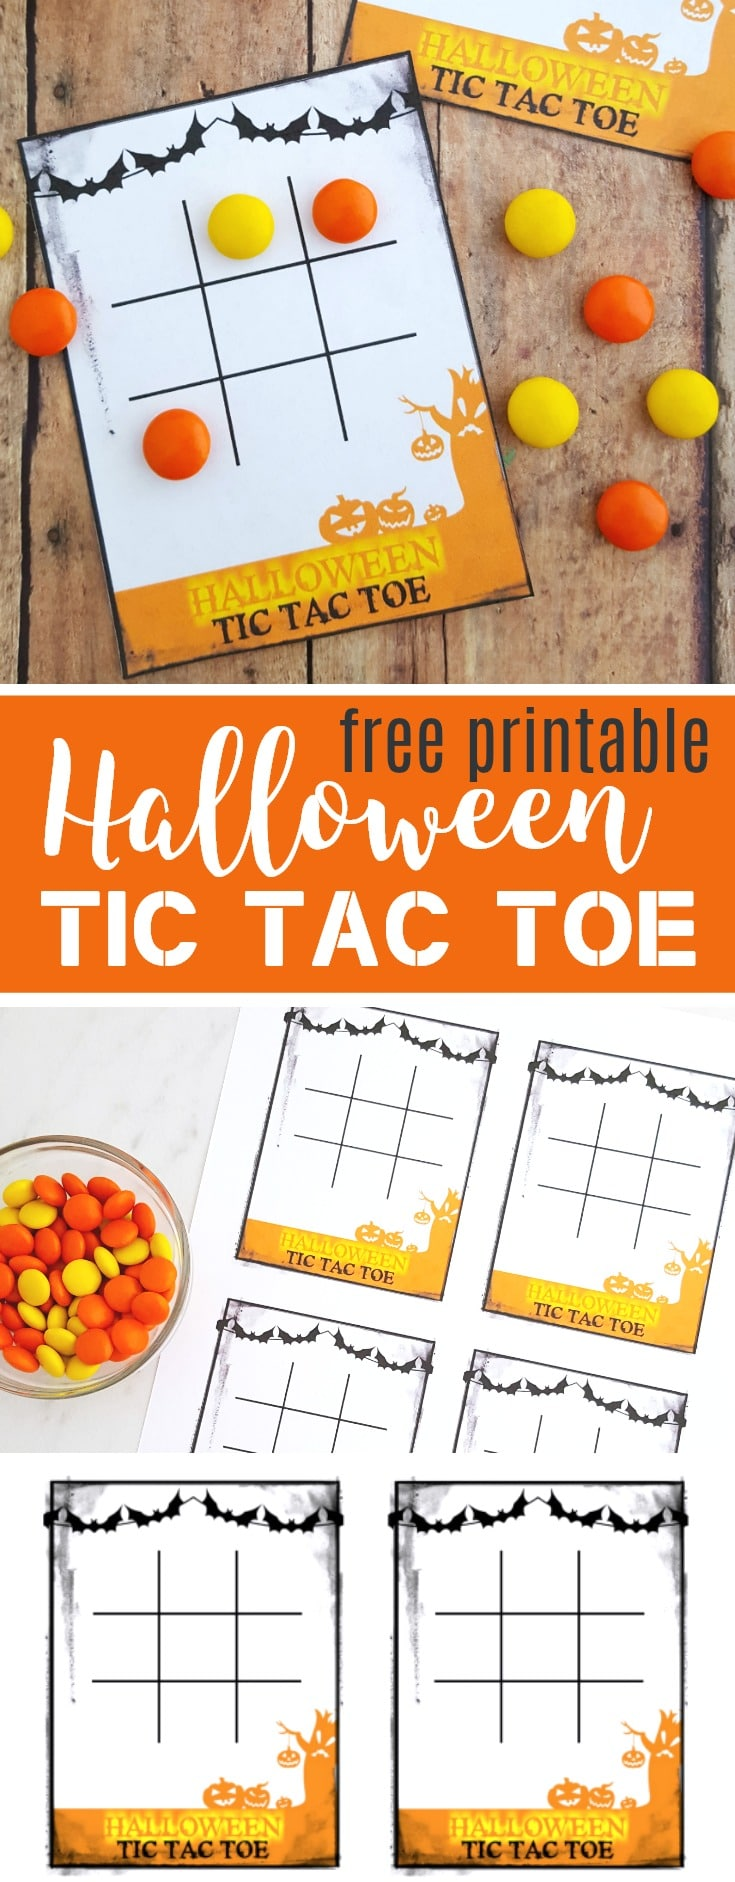 Free Halloween Tic Tac Toe Printable Game Cards